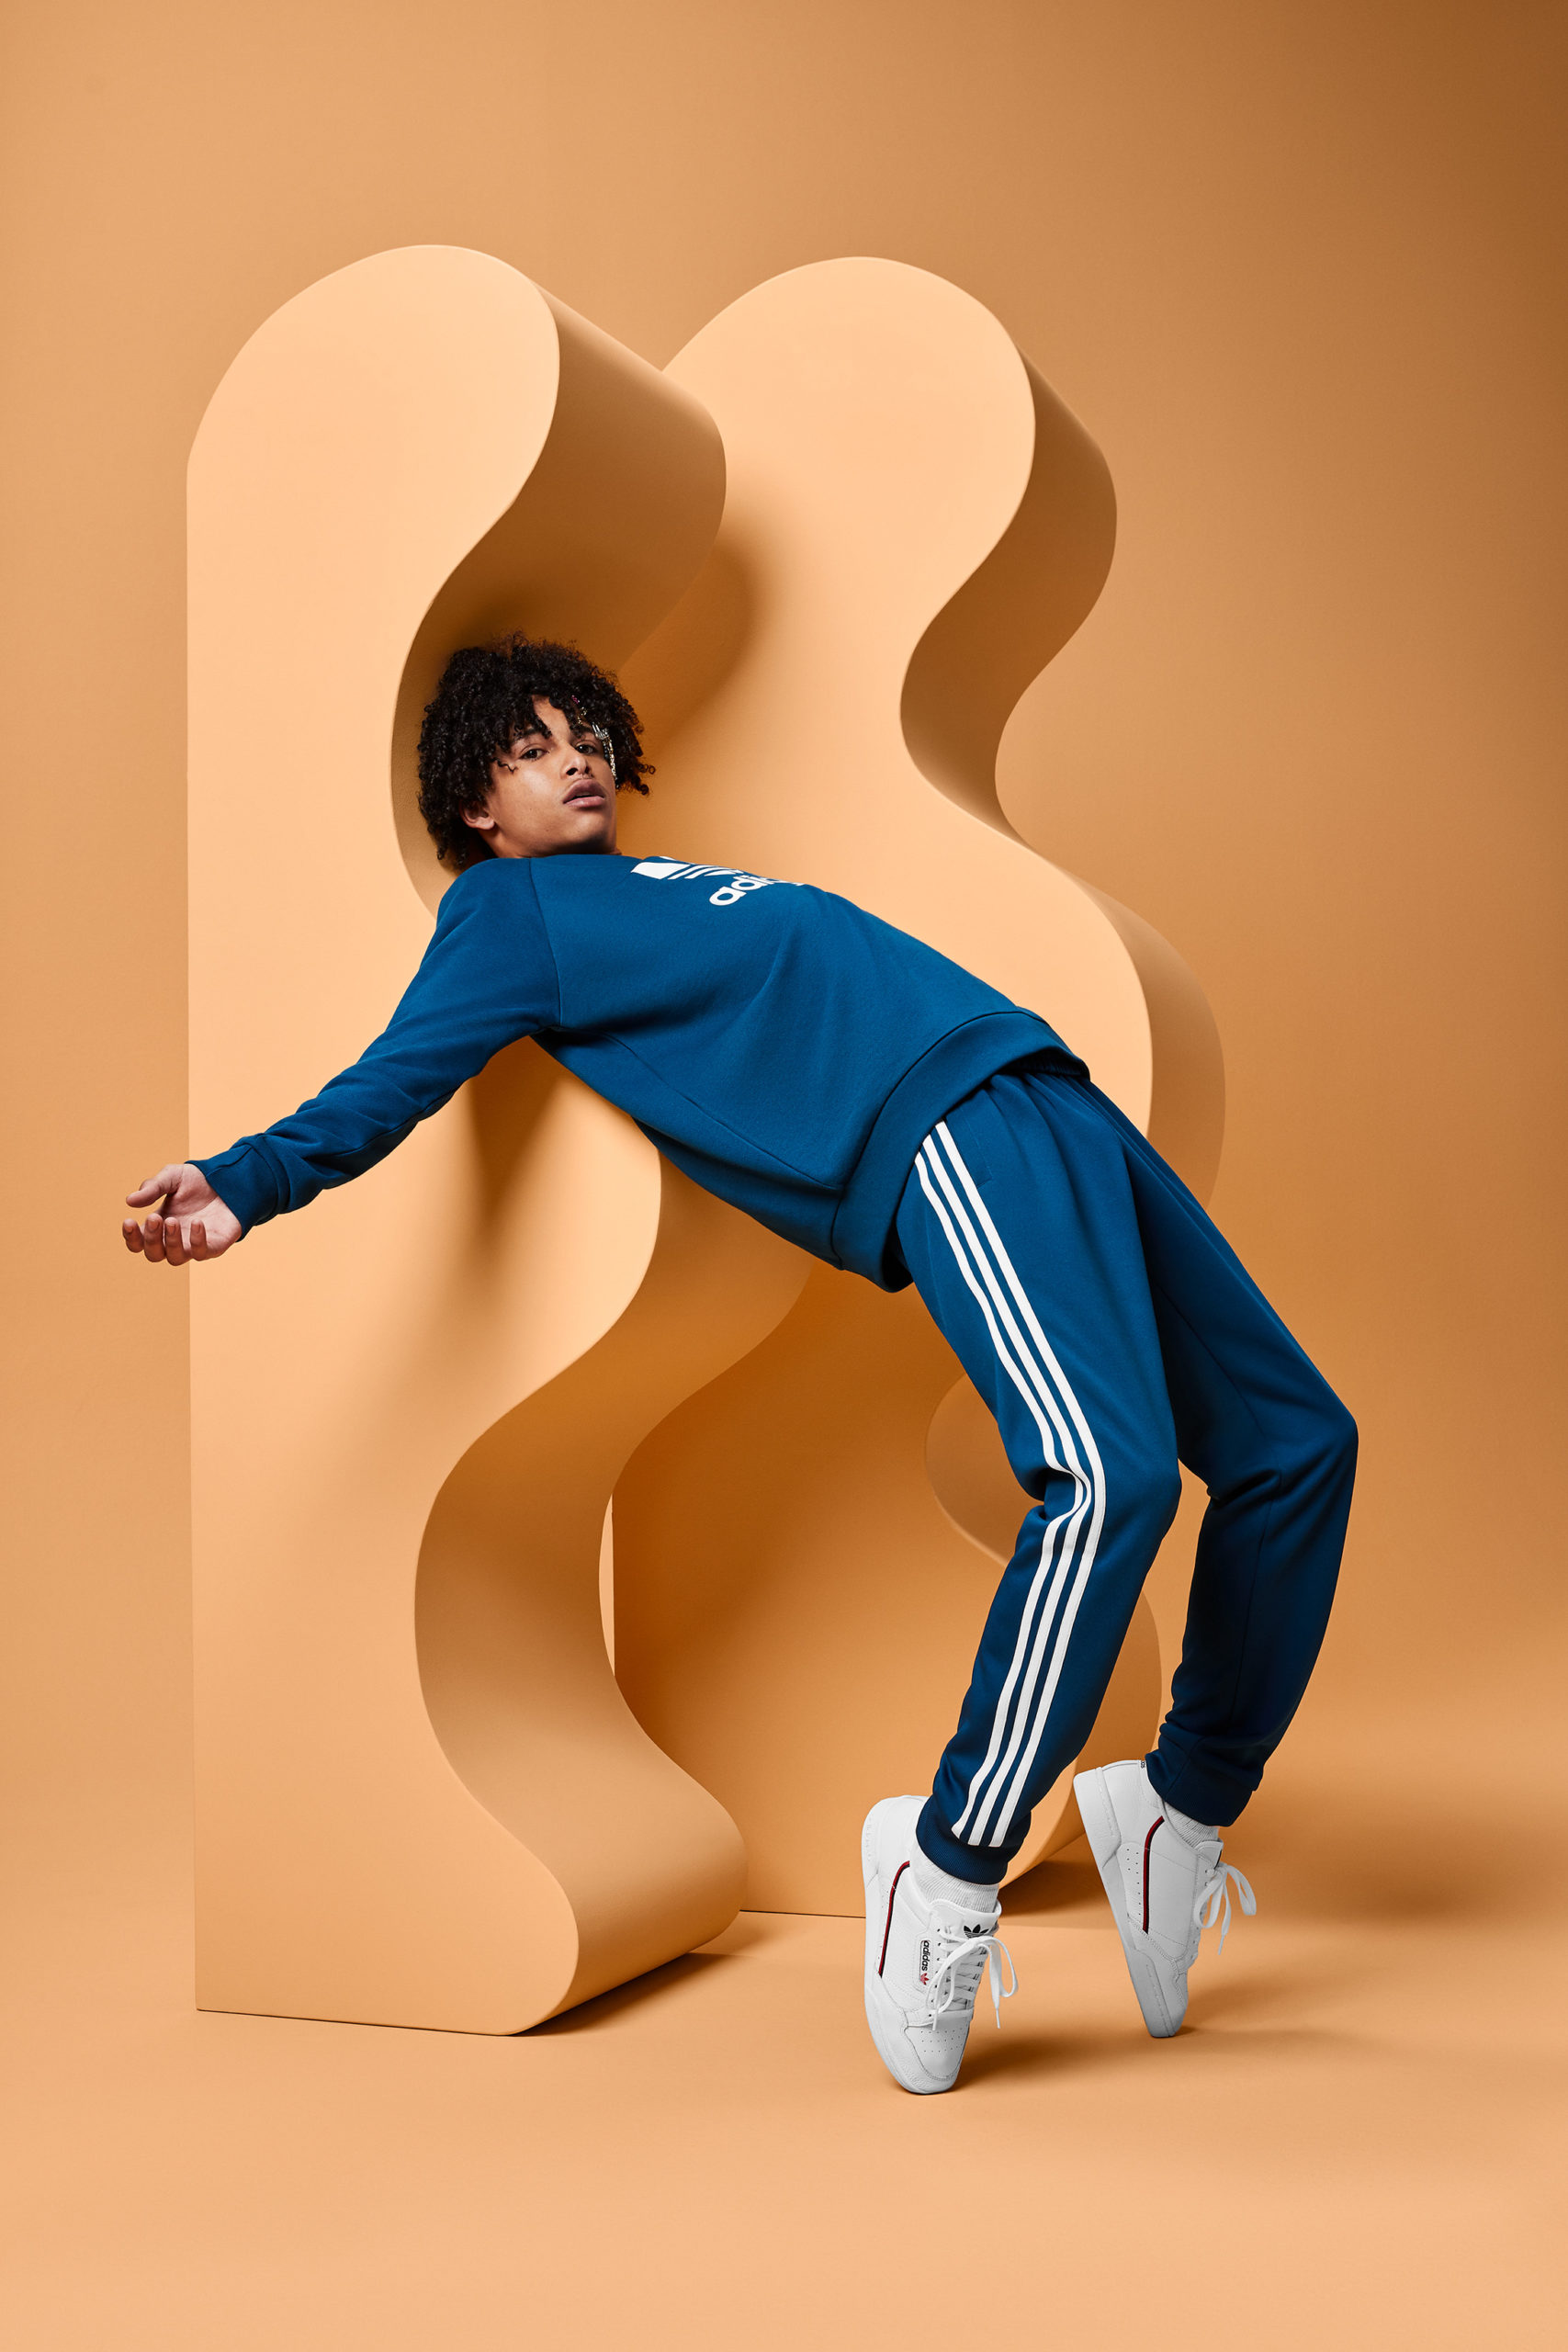 A guy in blue sweats leans back on tip-toes against a tan squiggly-shaped modular piece on a tan set.